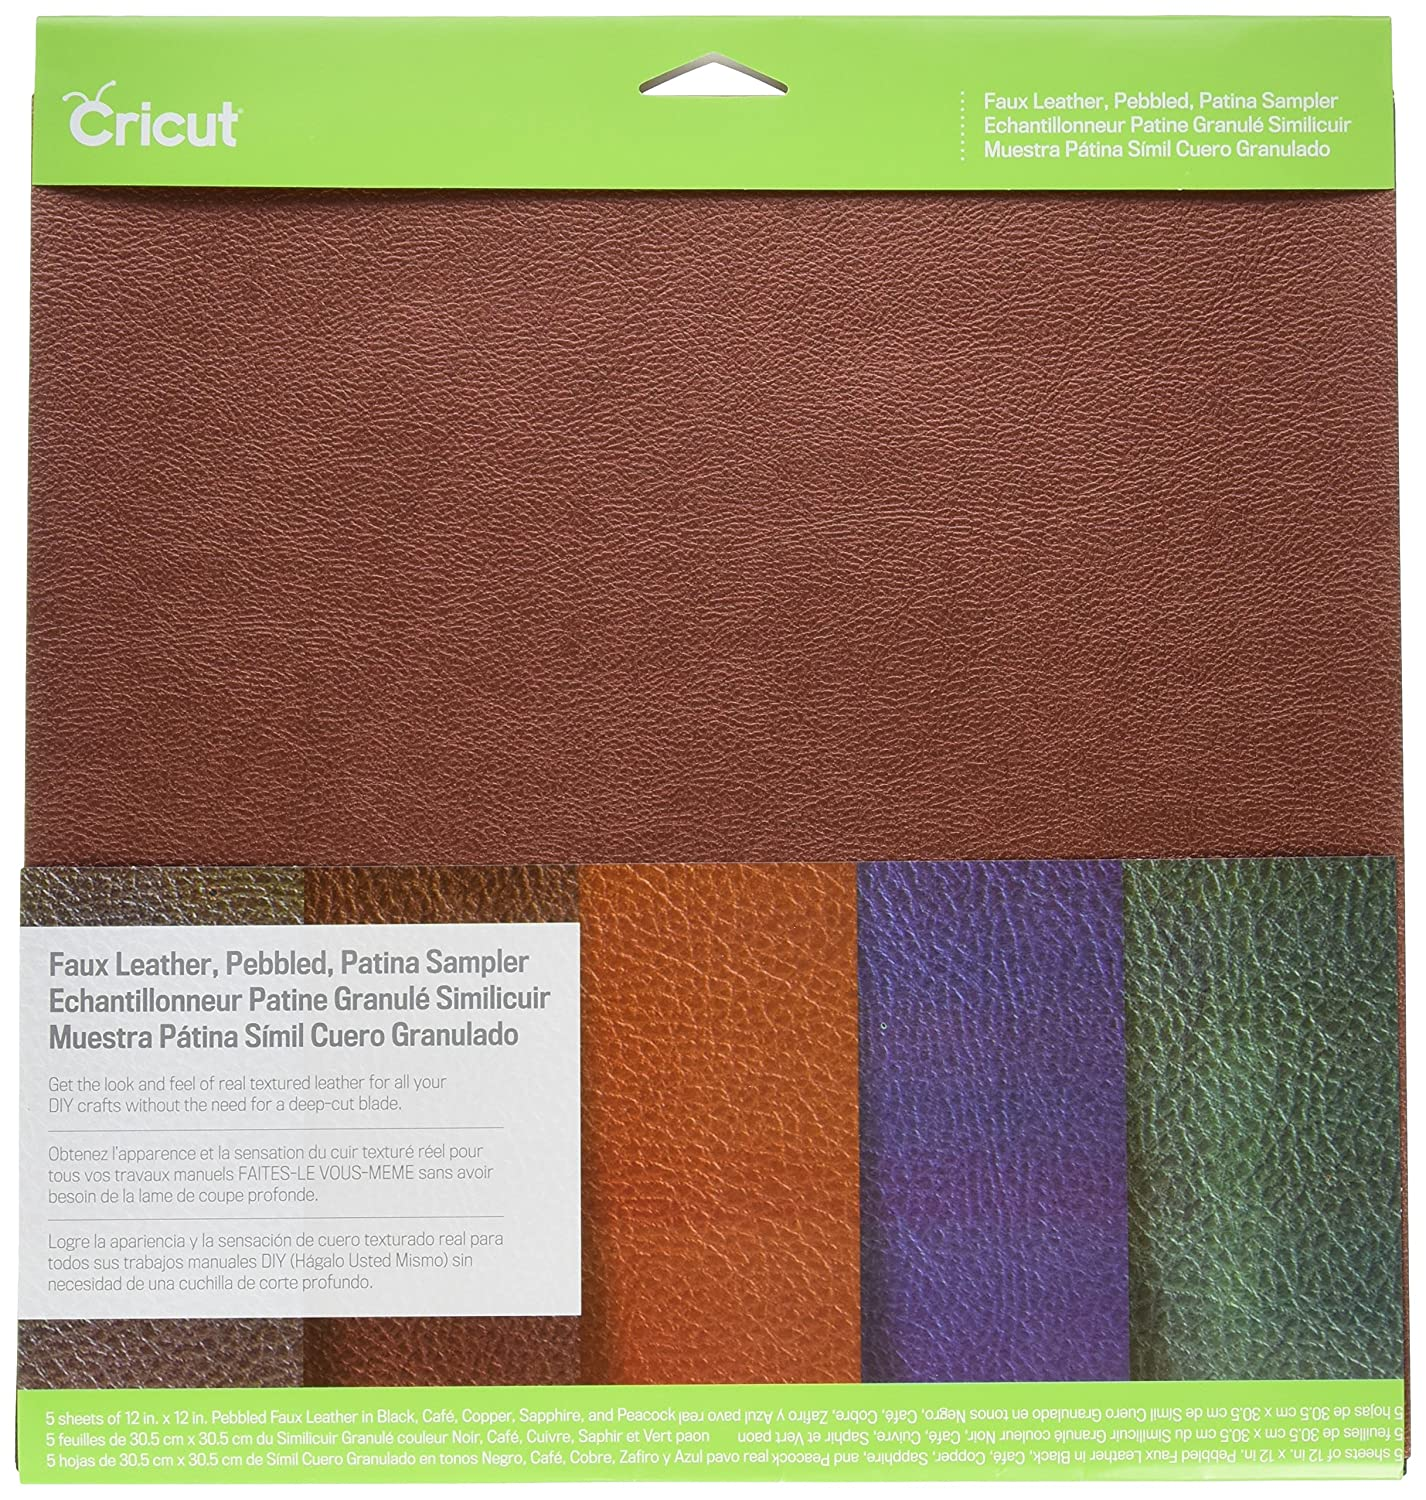 Cricut 2003573  Pebbled in Finta Pelle, Patina Sampler Provocraft  Novelty Inc.